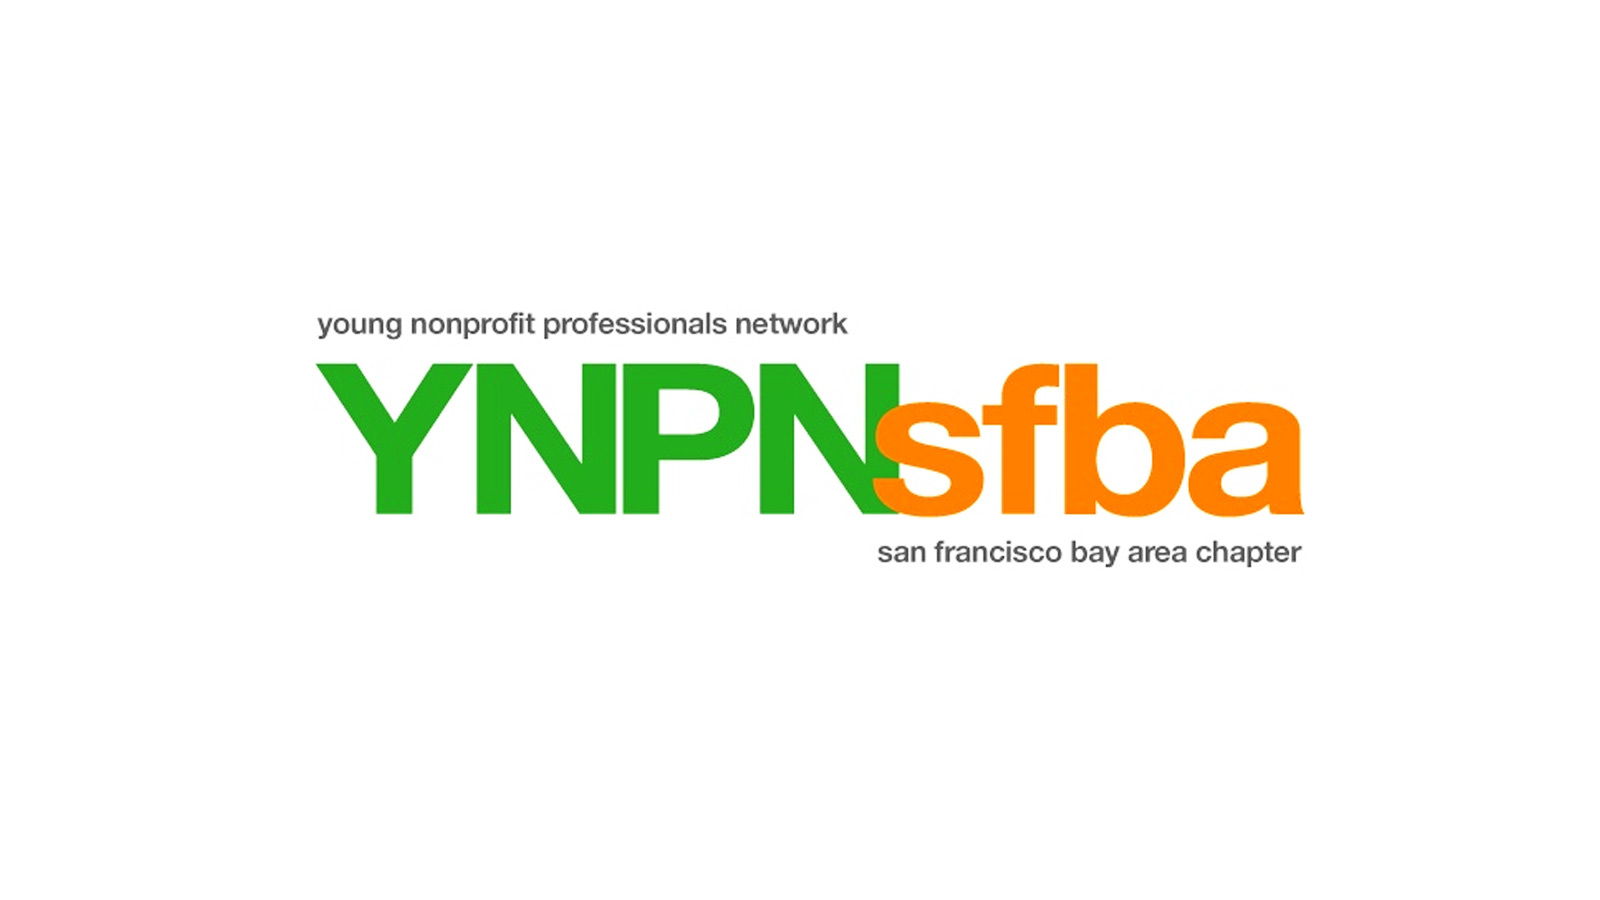 Three Bay Area Young Nonprofit Professionals Honored for Service by YNPN: Curt Yagi, Gwyneth Borden, Lisa Stringer